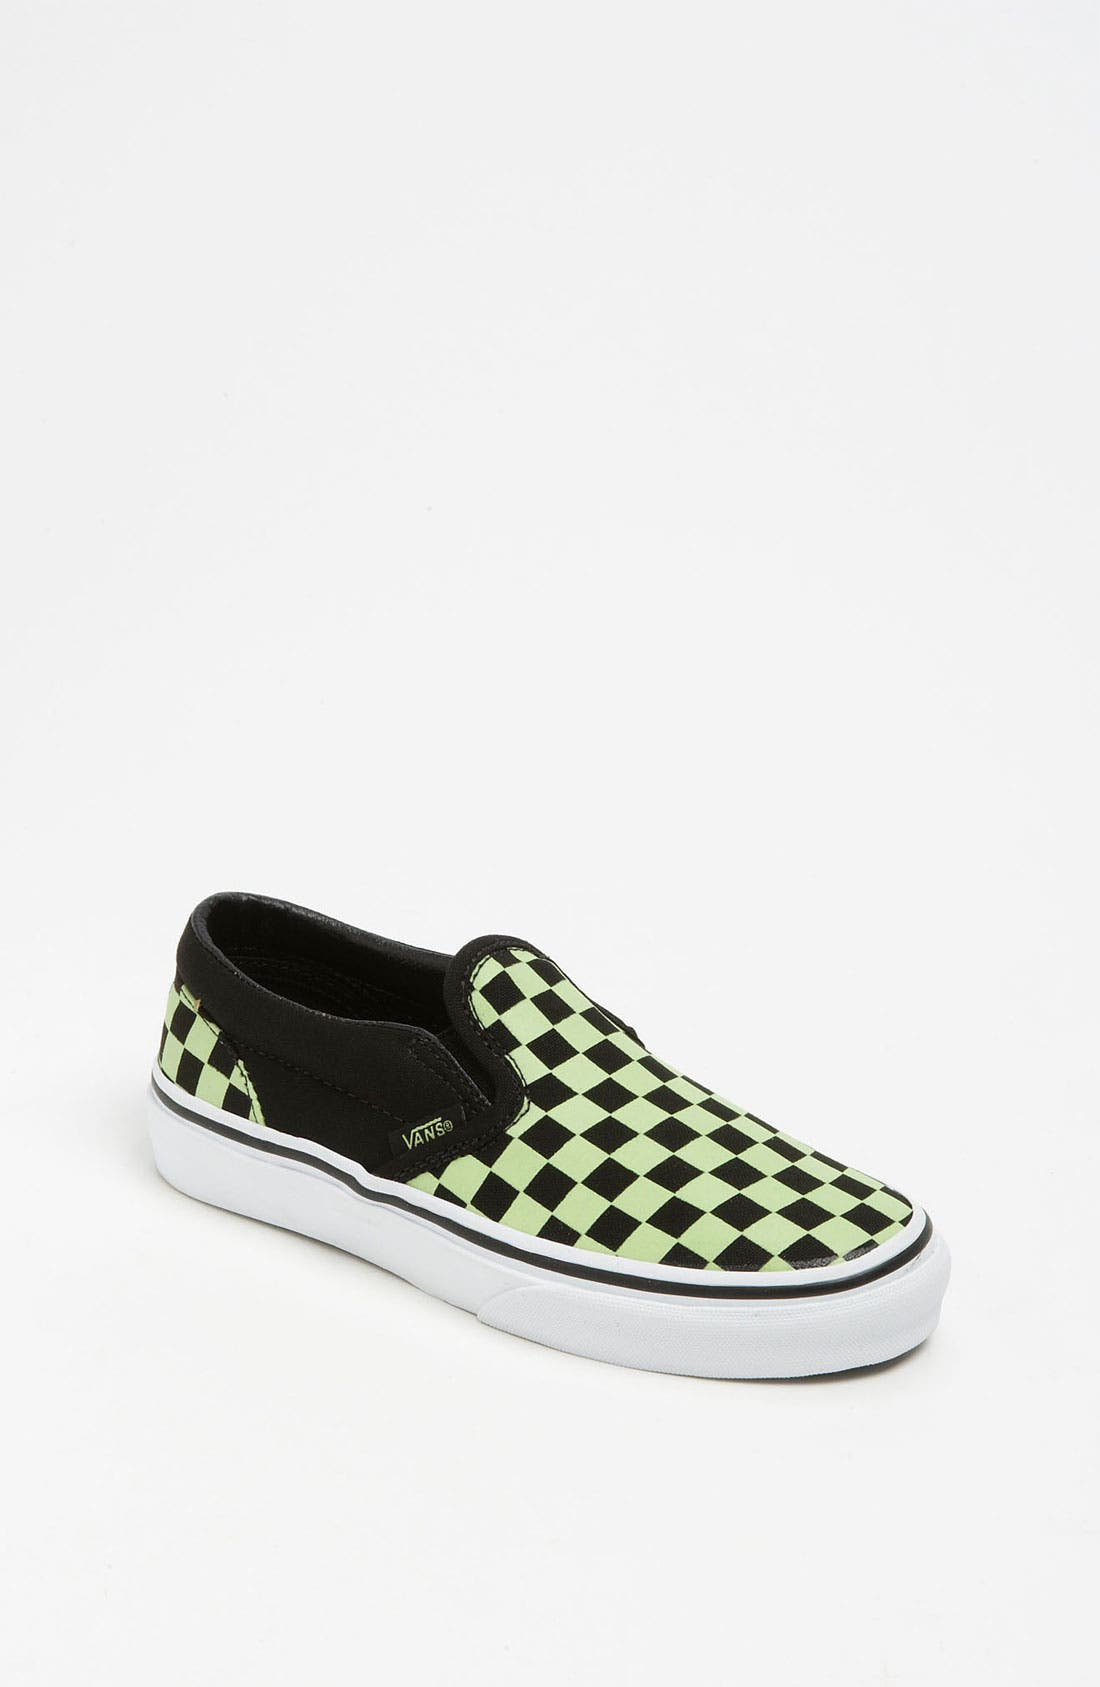 Main Image - Vans 'Classic Checker - Glow in the Dark' Slip-On (Toddler, Little Kid & Bid Kid)